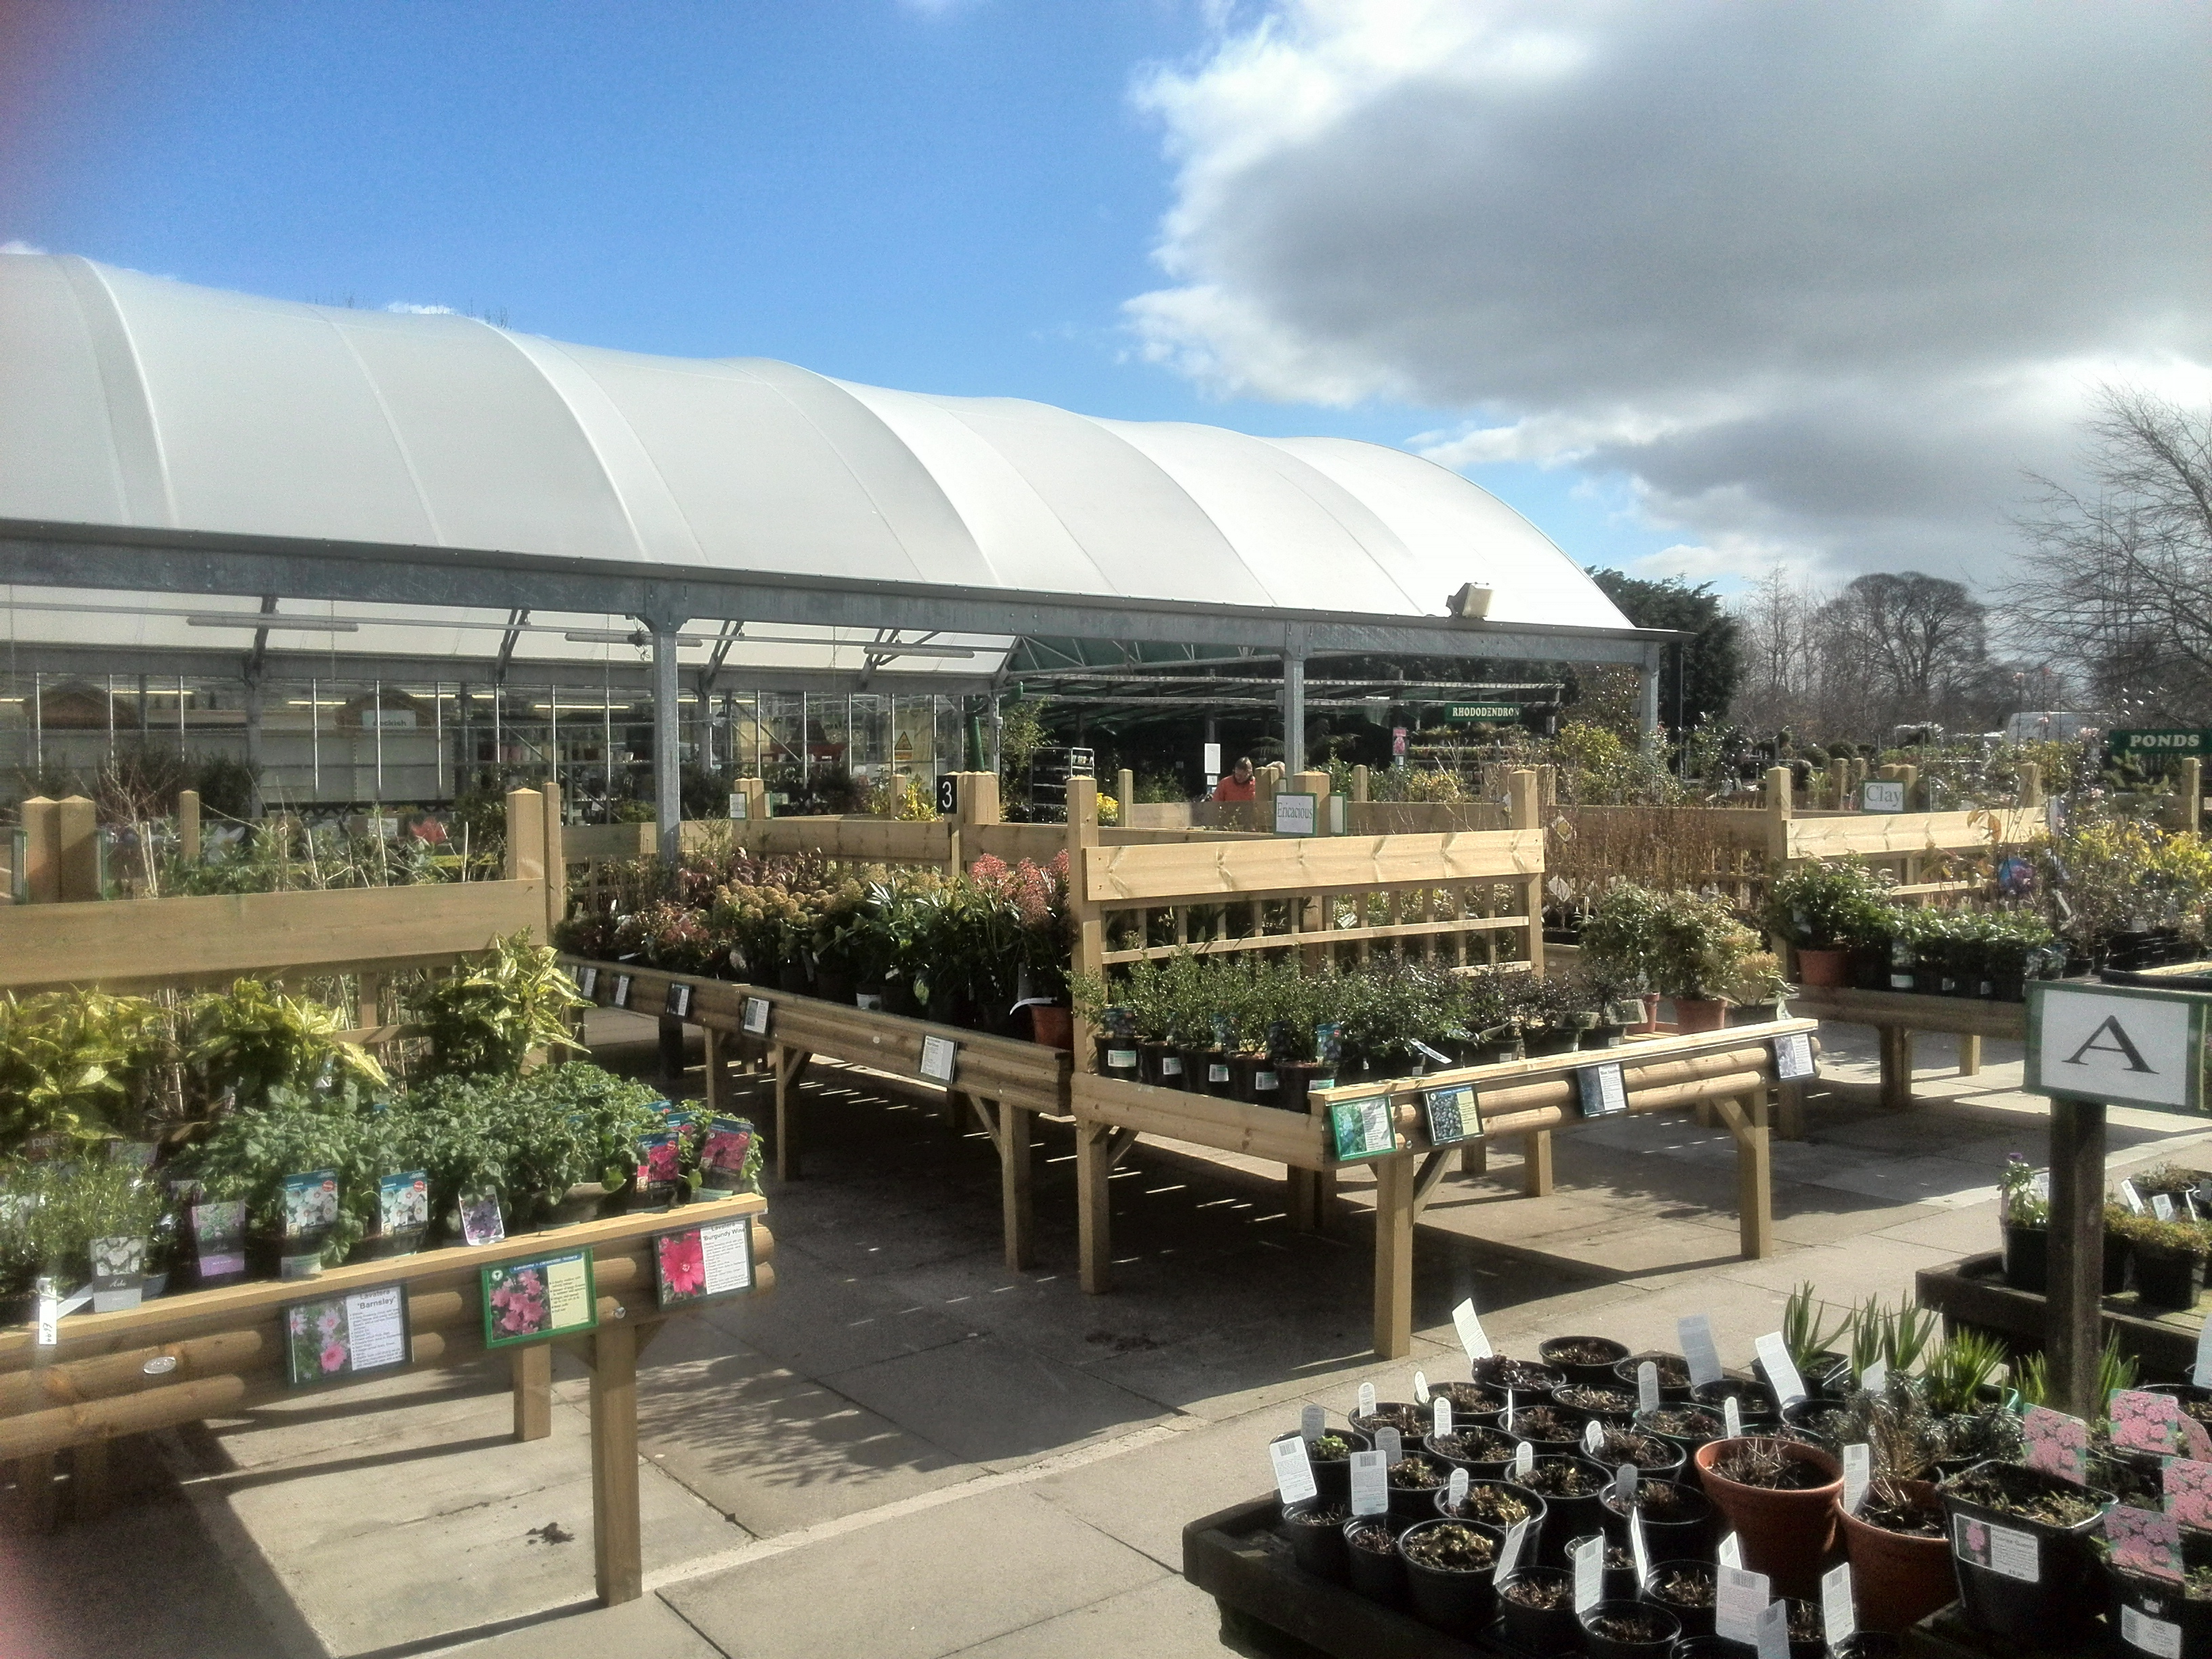 Twinlocks garden centre